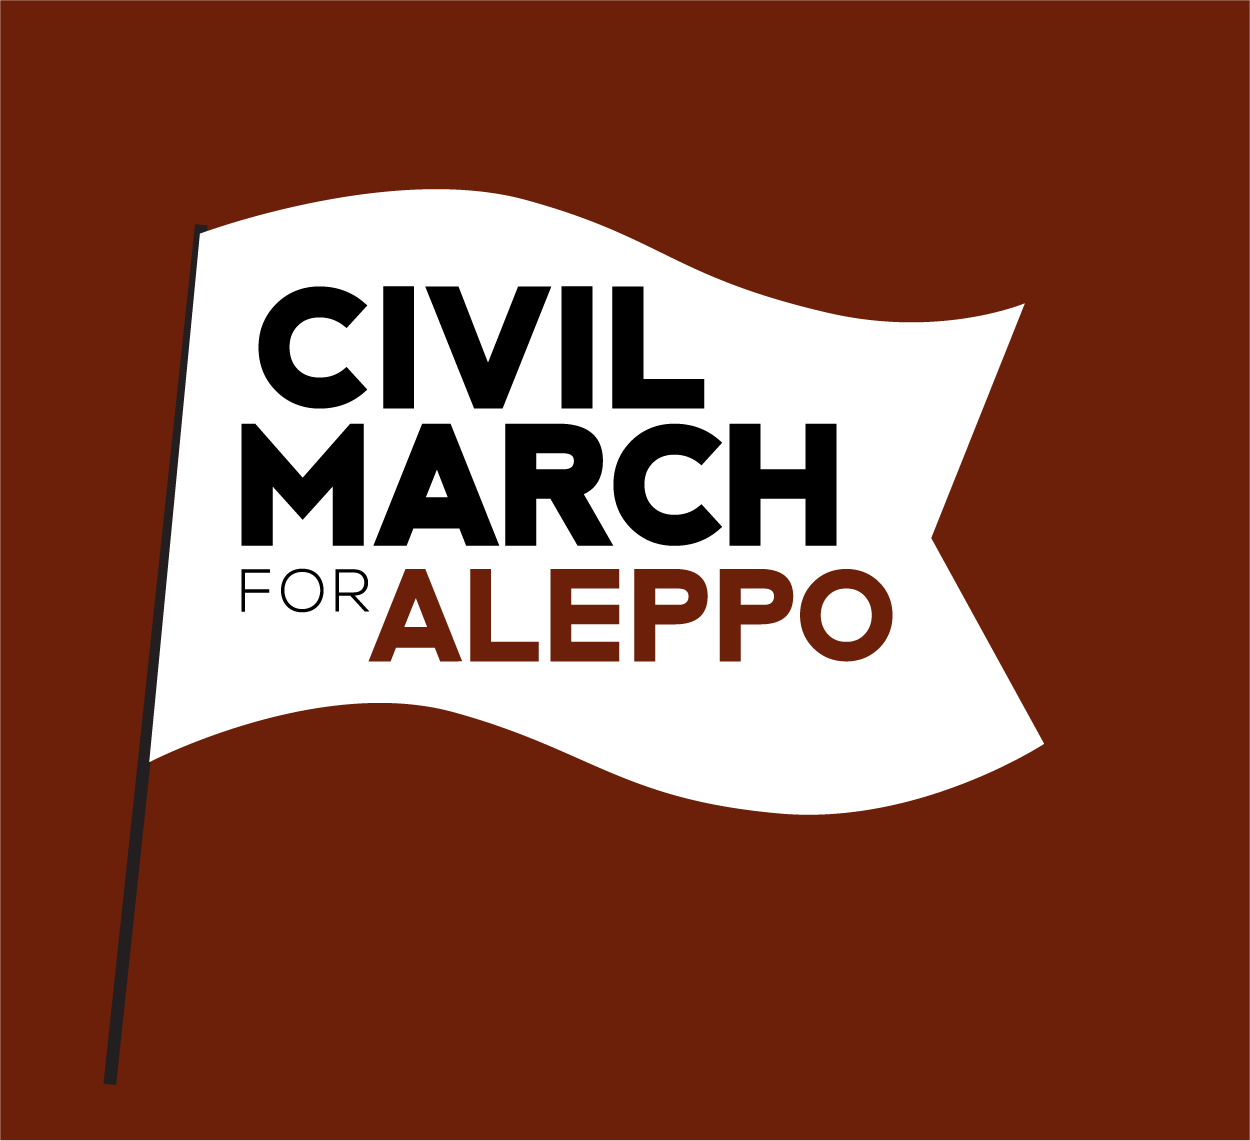 here you can join our route civil march for aleppo - Einladungstext Fur Grillfest